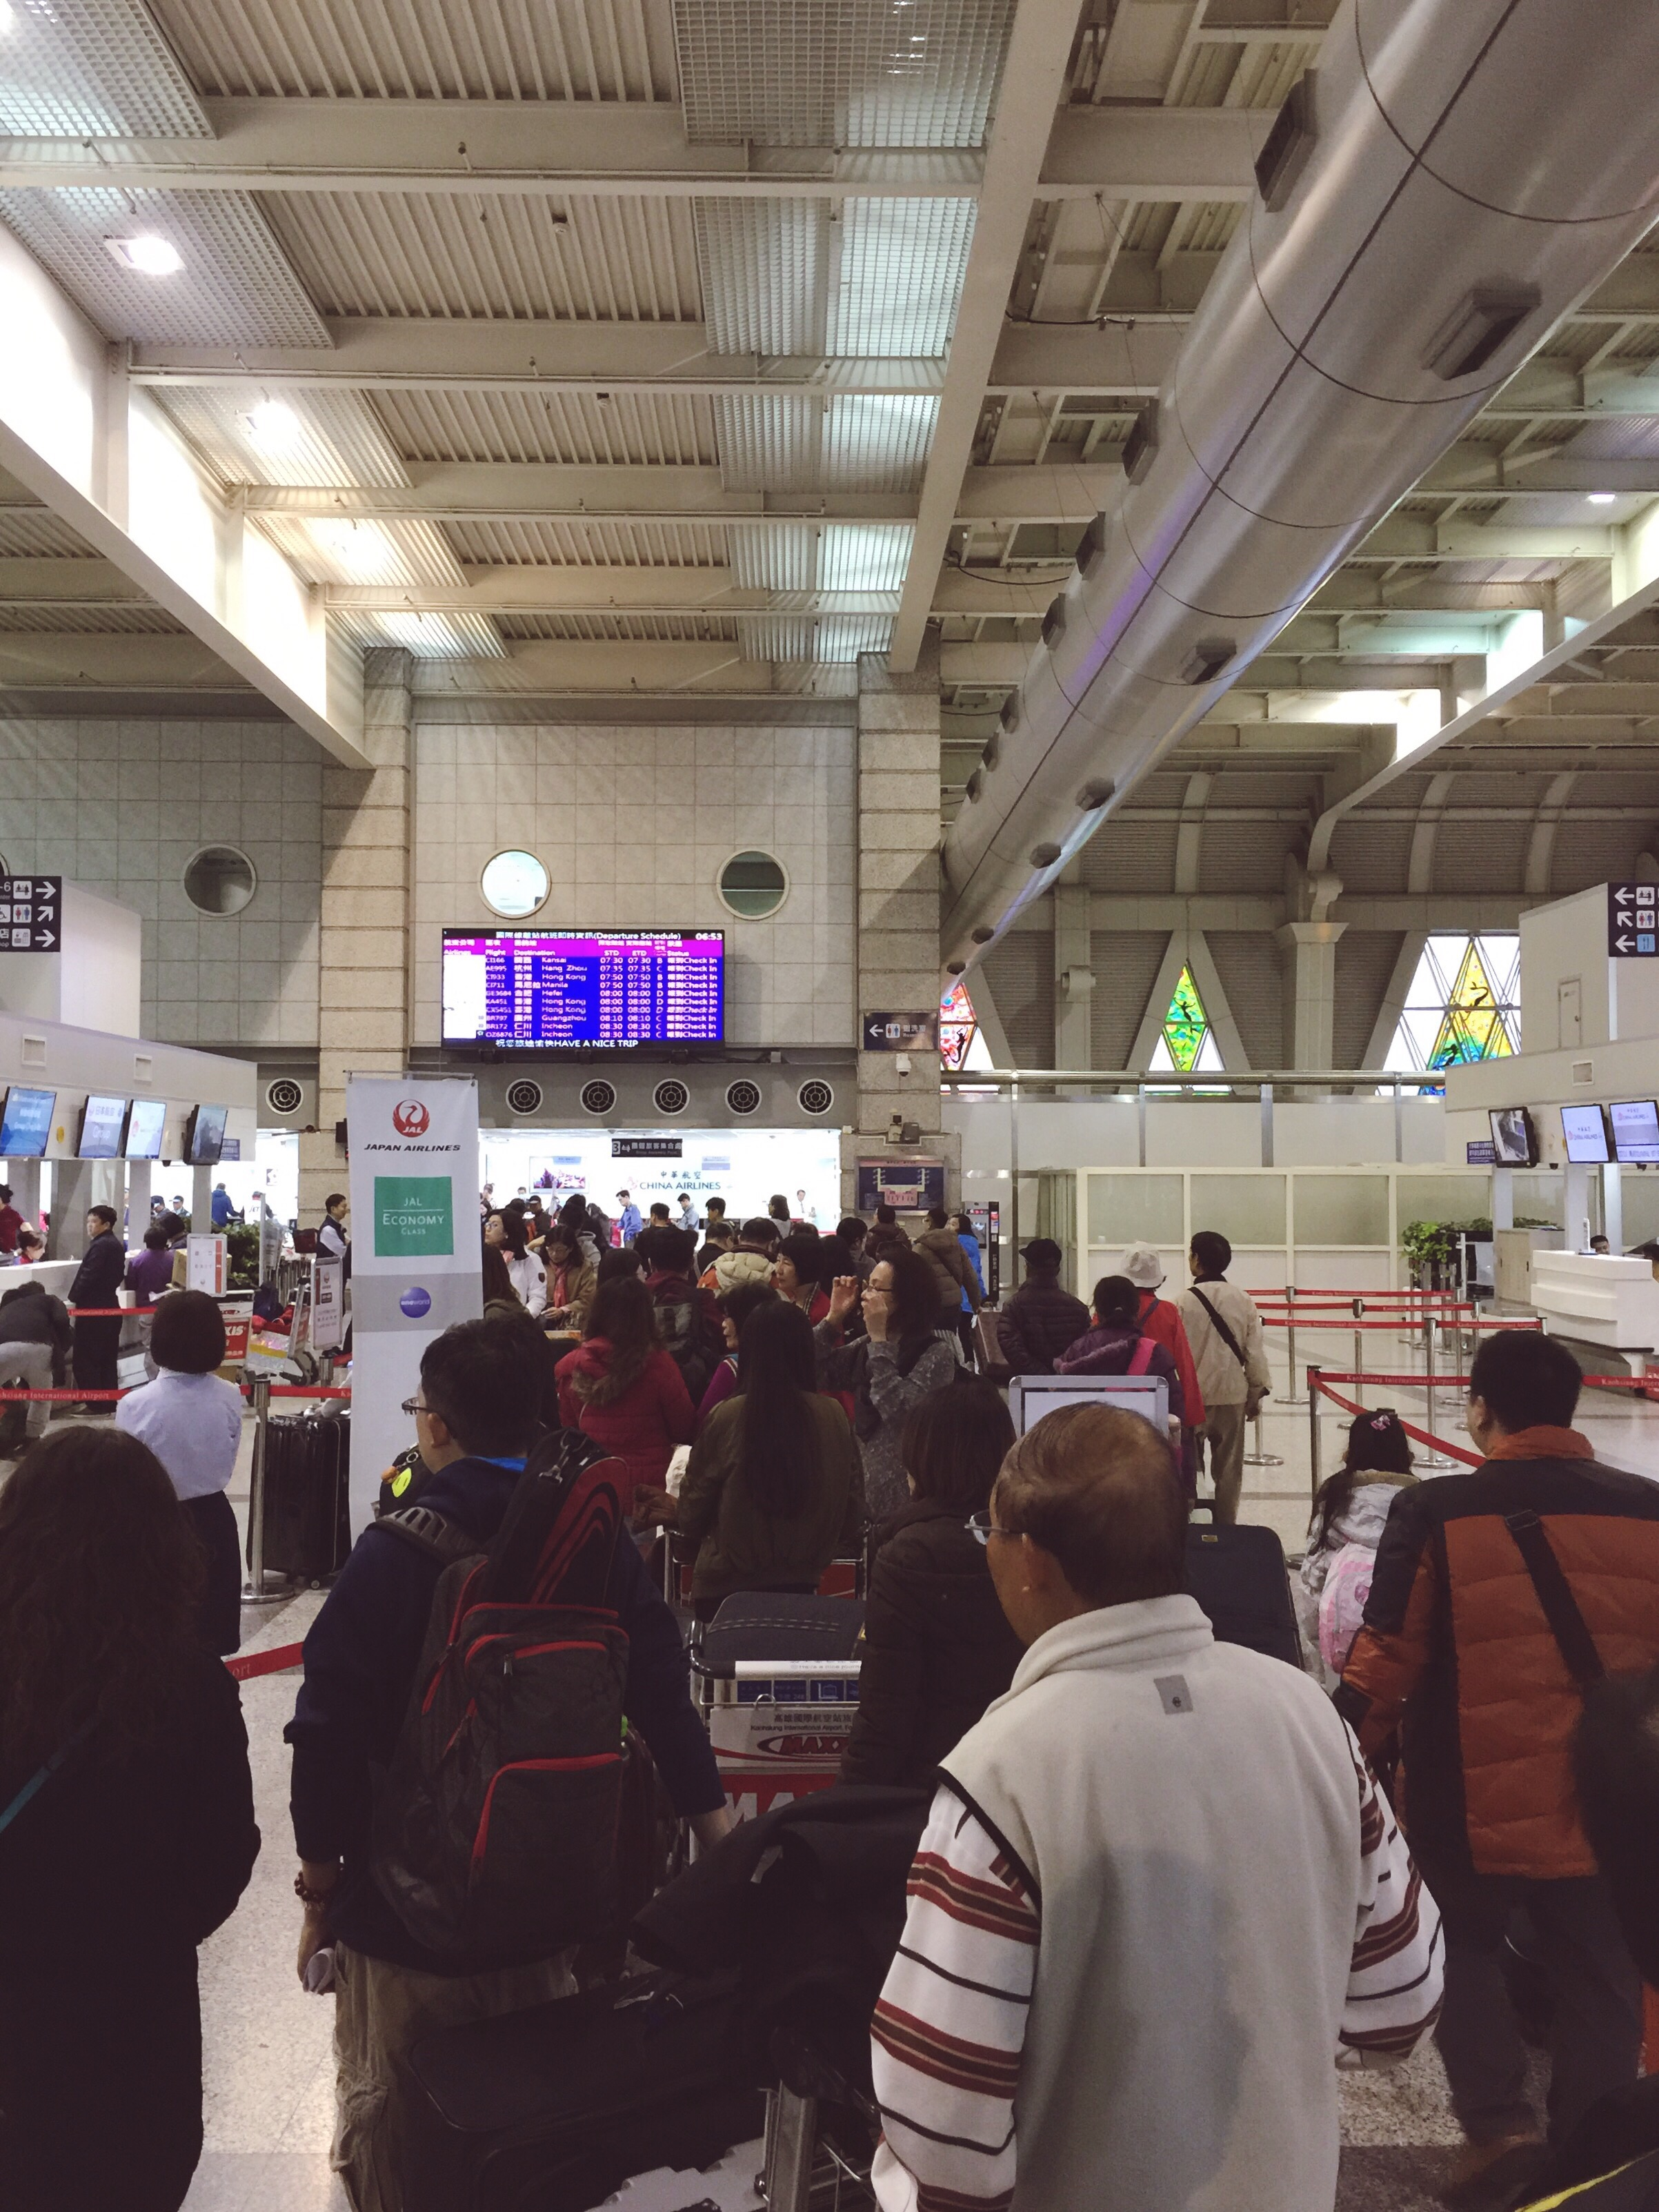 Kaohsiung airport, early this morning.